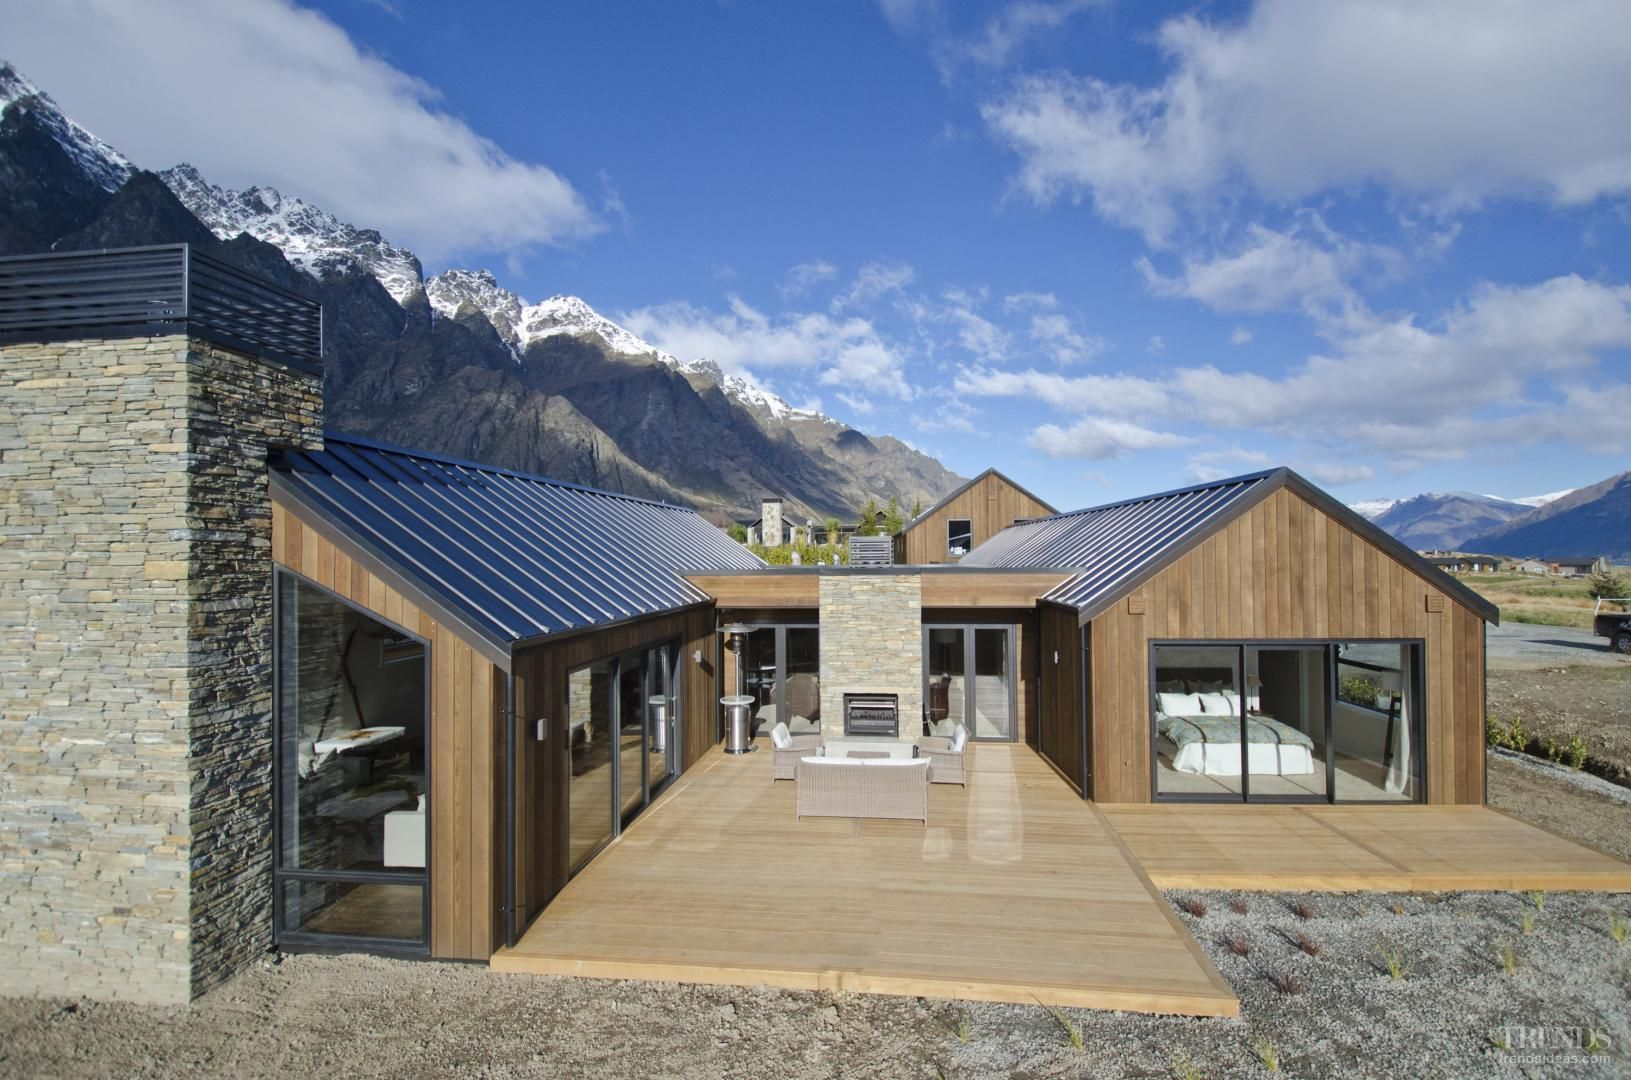 David reid homes show home in queenstown house design for Modern house designs nz